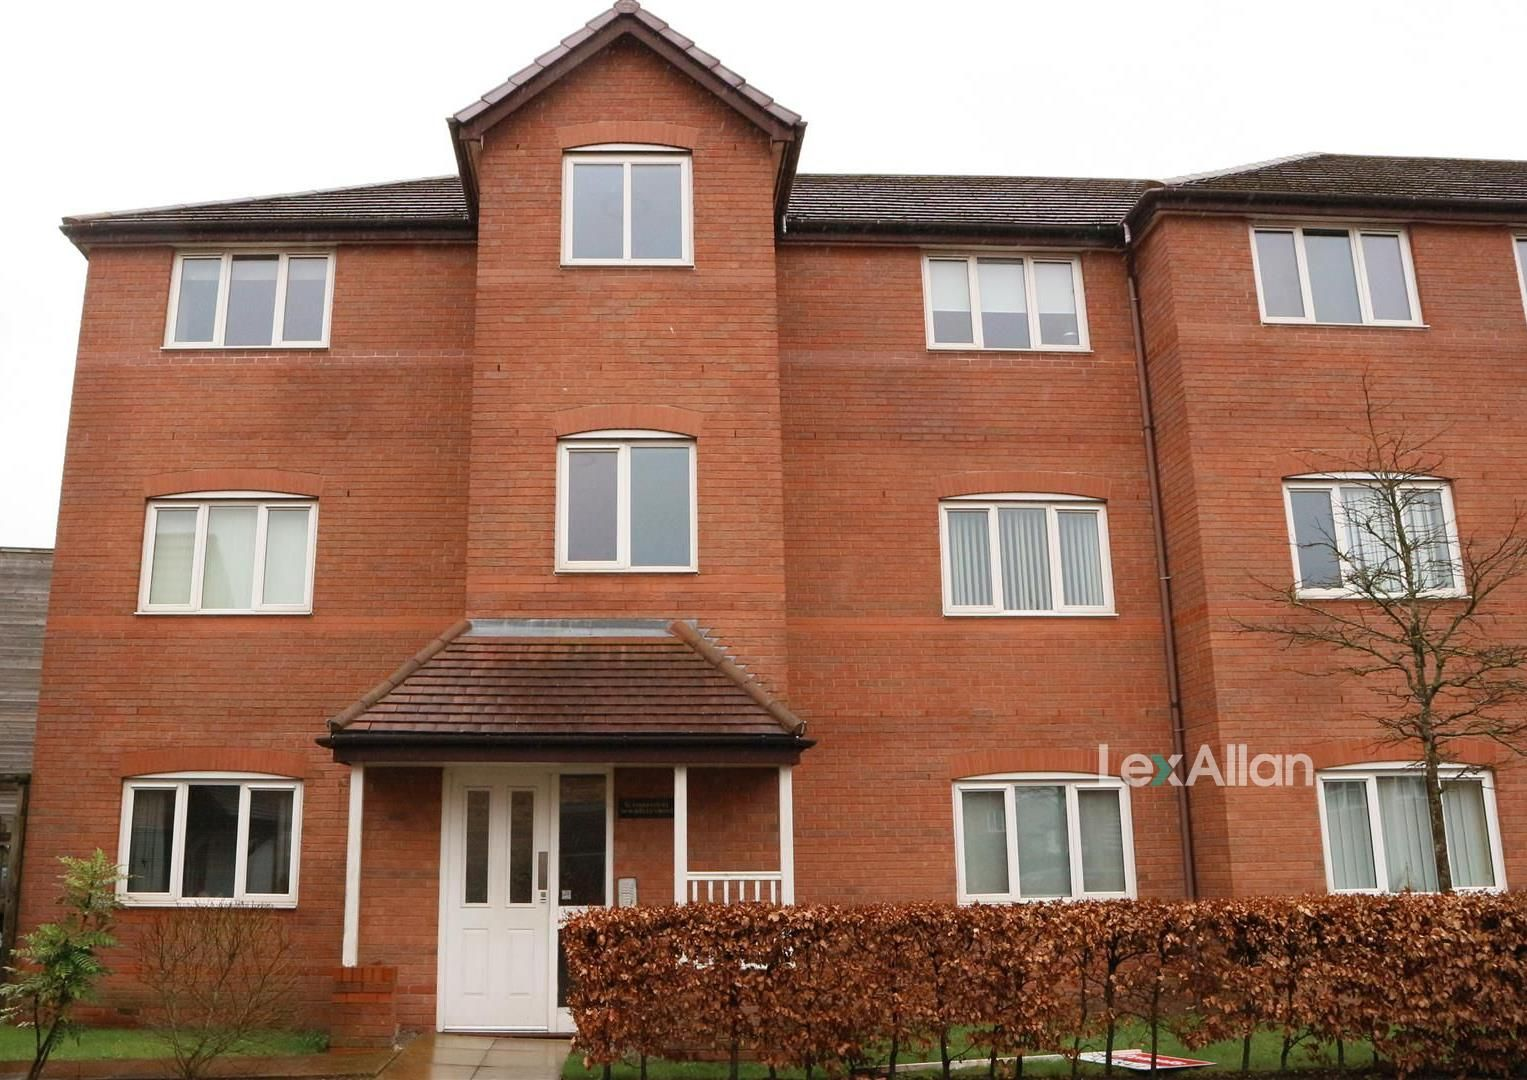 1 bed flat for sale, DY1